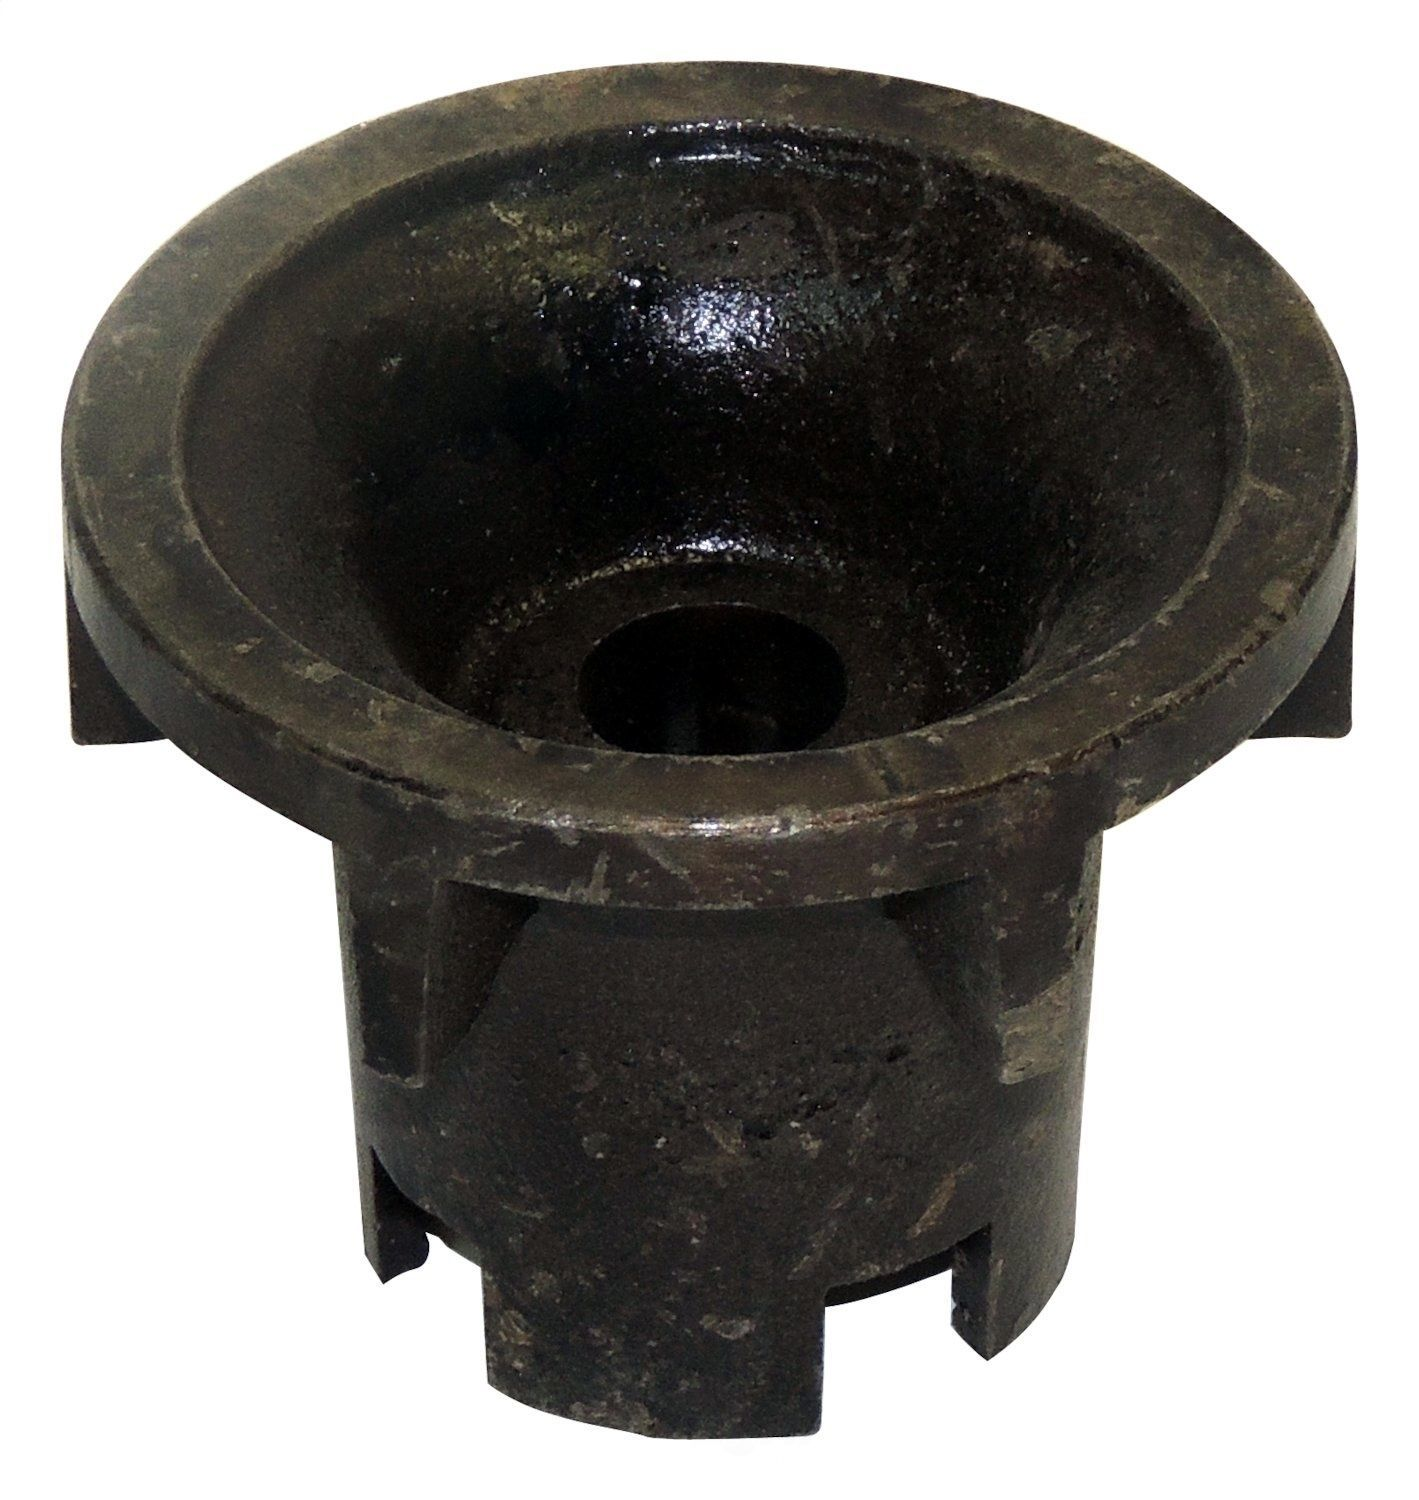 CROWN AUTOMOTIVE SALES CO. - Water Pump Impeller - CAJ 639993